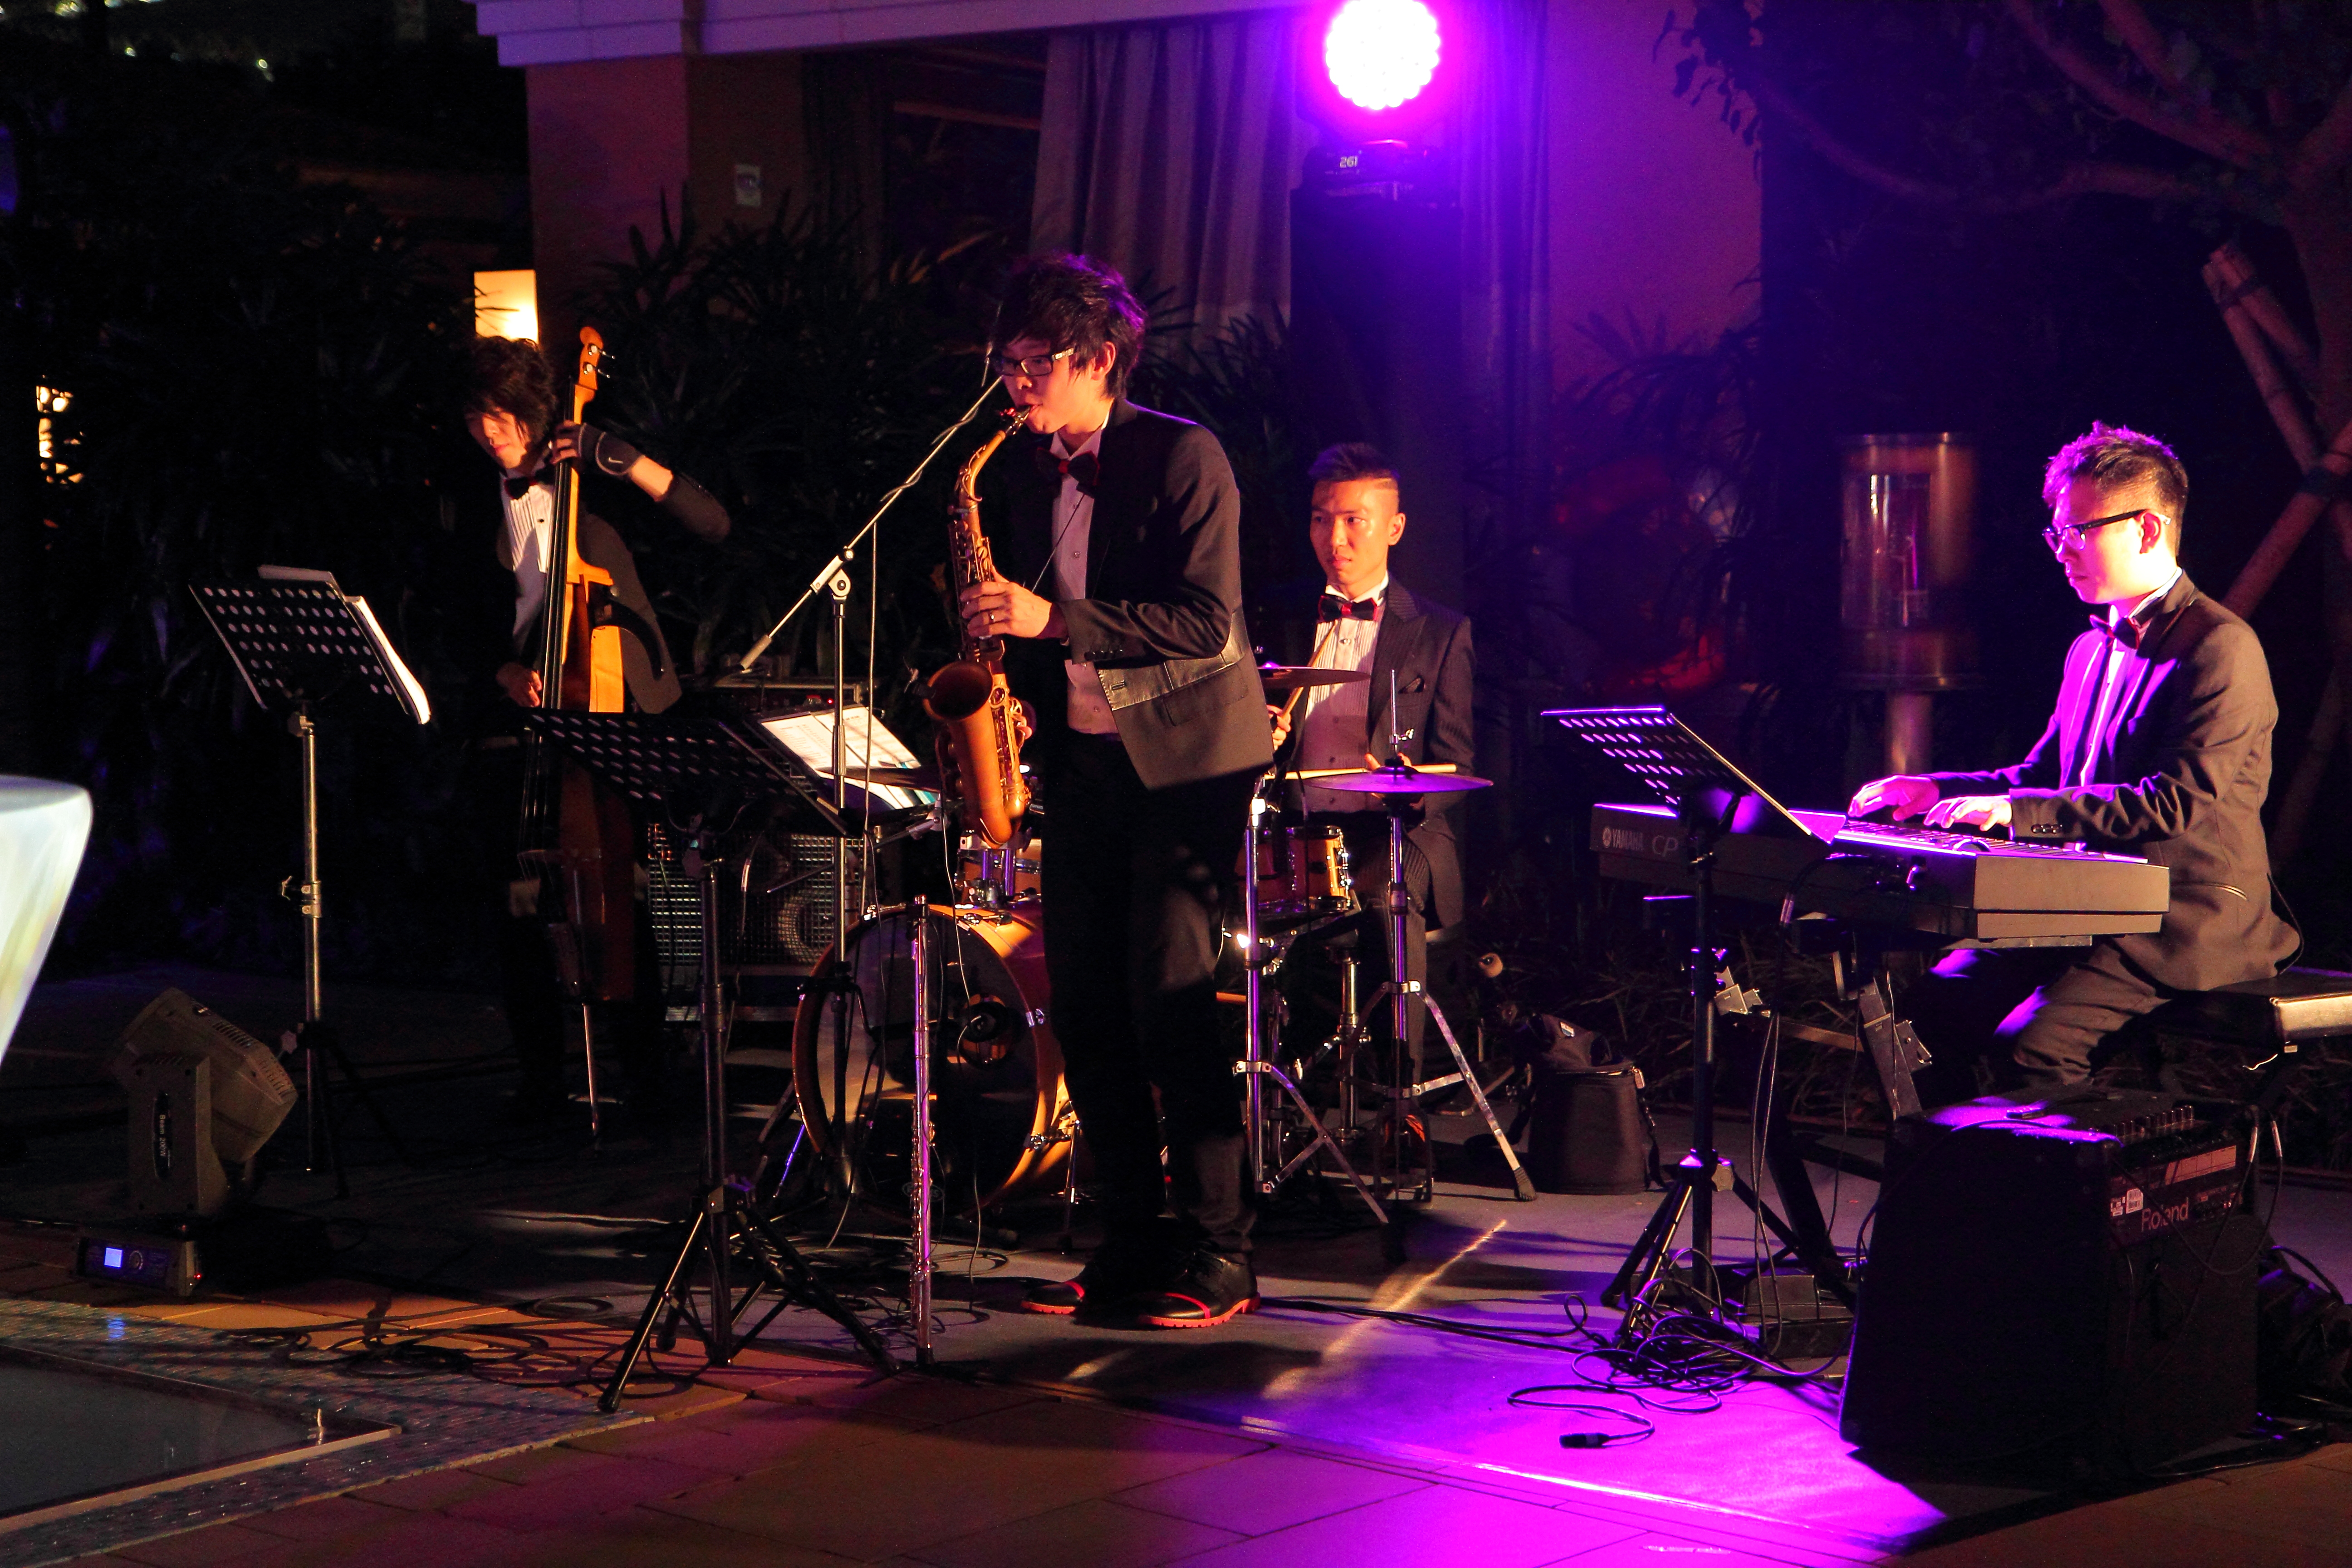 The Sapphire Jazz Band @ Macau BMW